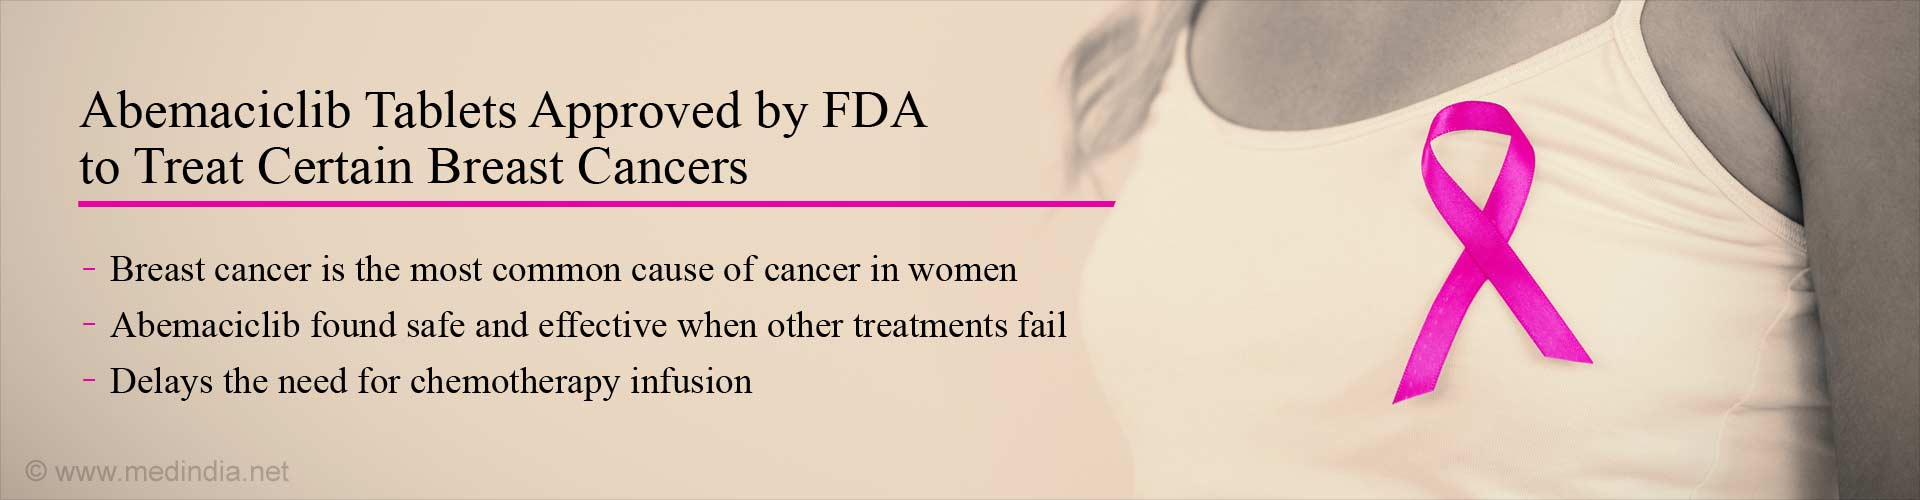 FDA Approves Abemaciclib to Treat Women With Certain Breast Cancers